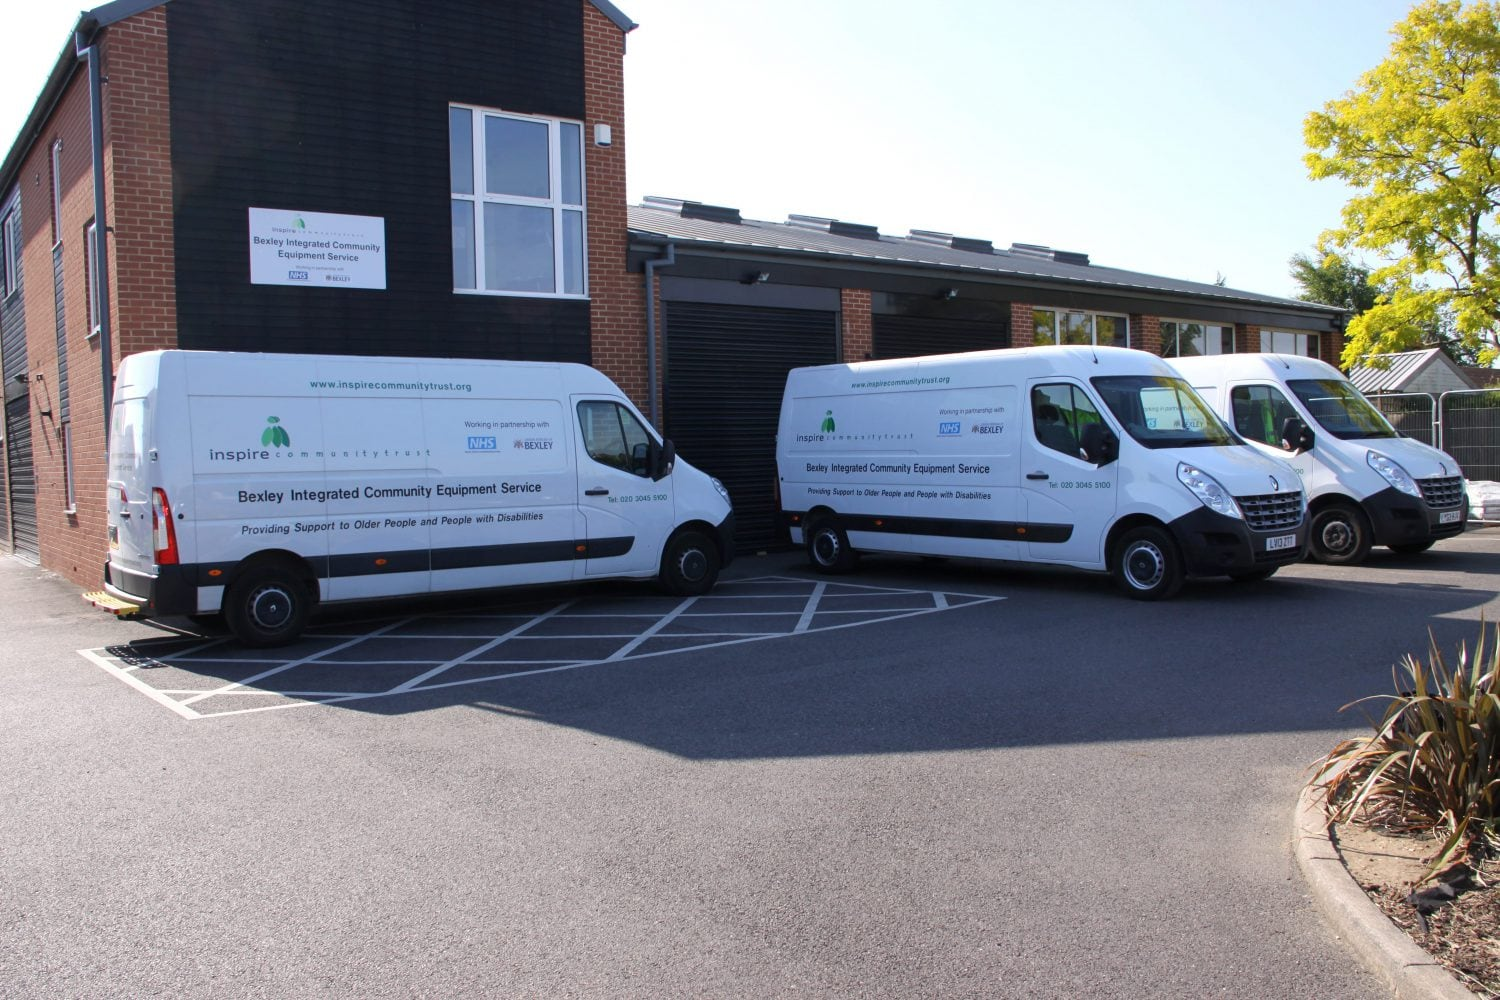 Inspire community trust vans parked outside of a building.